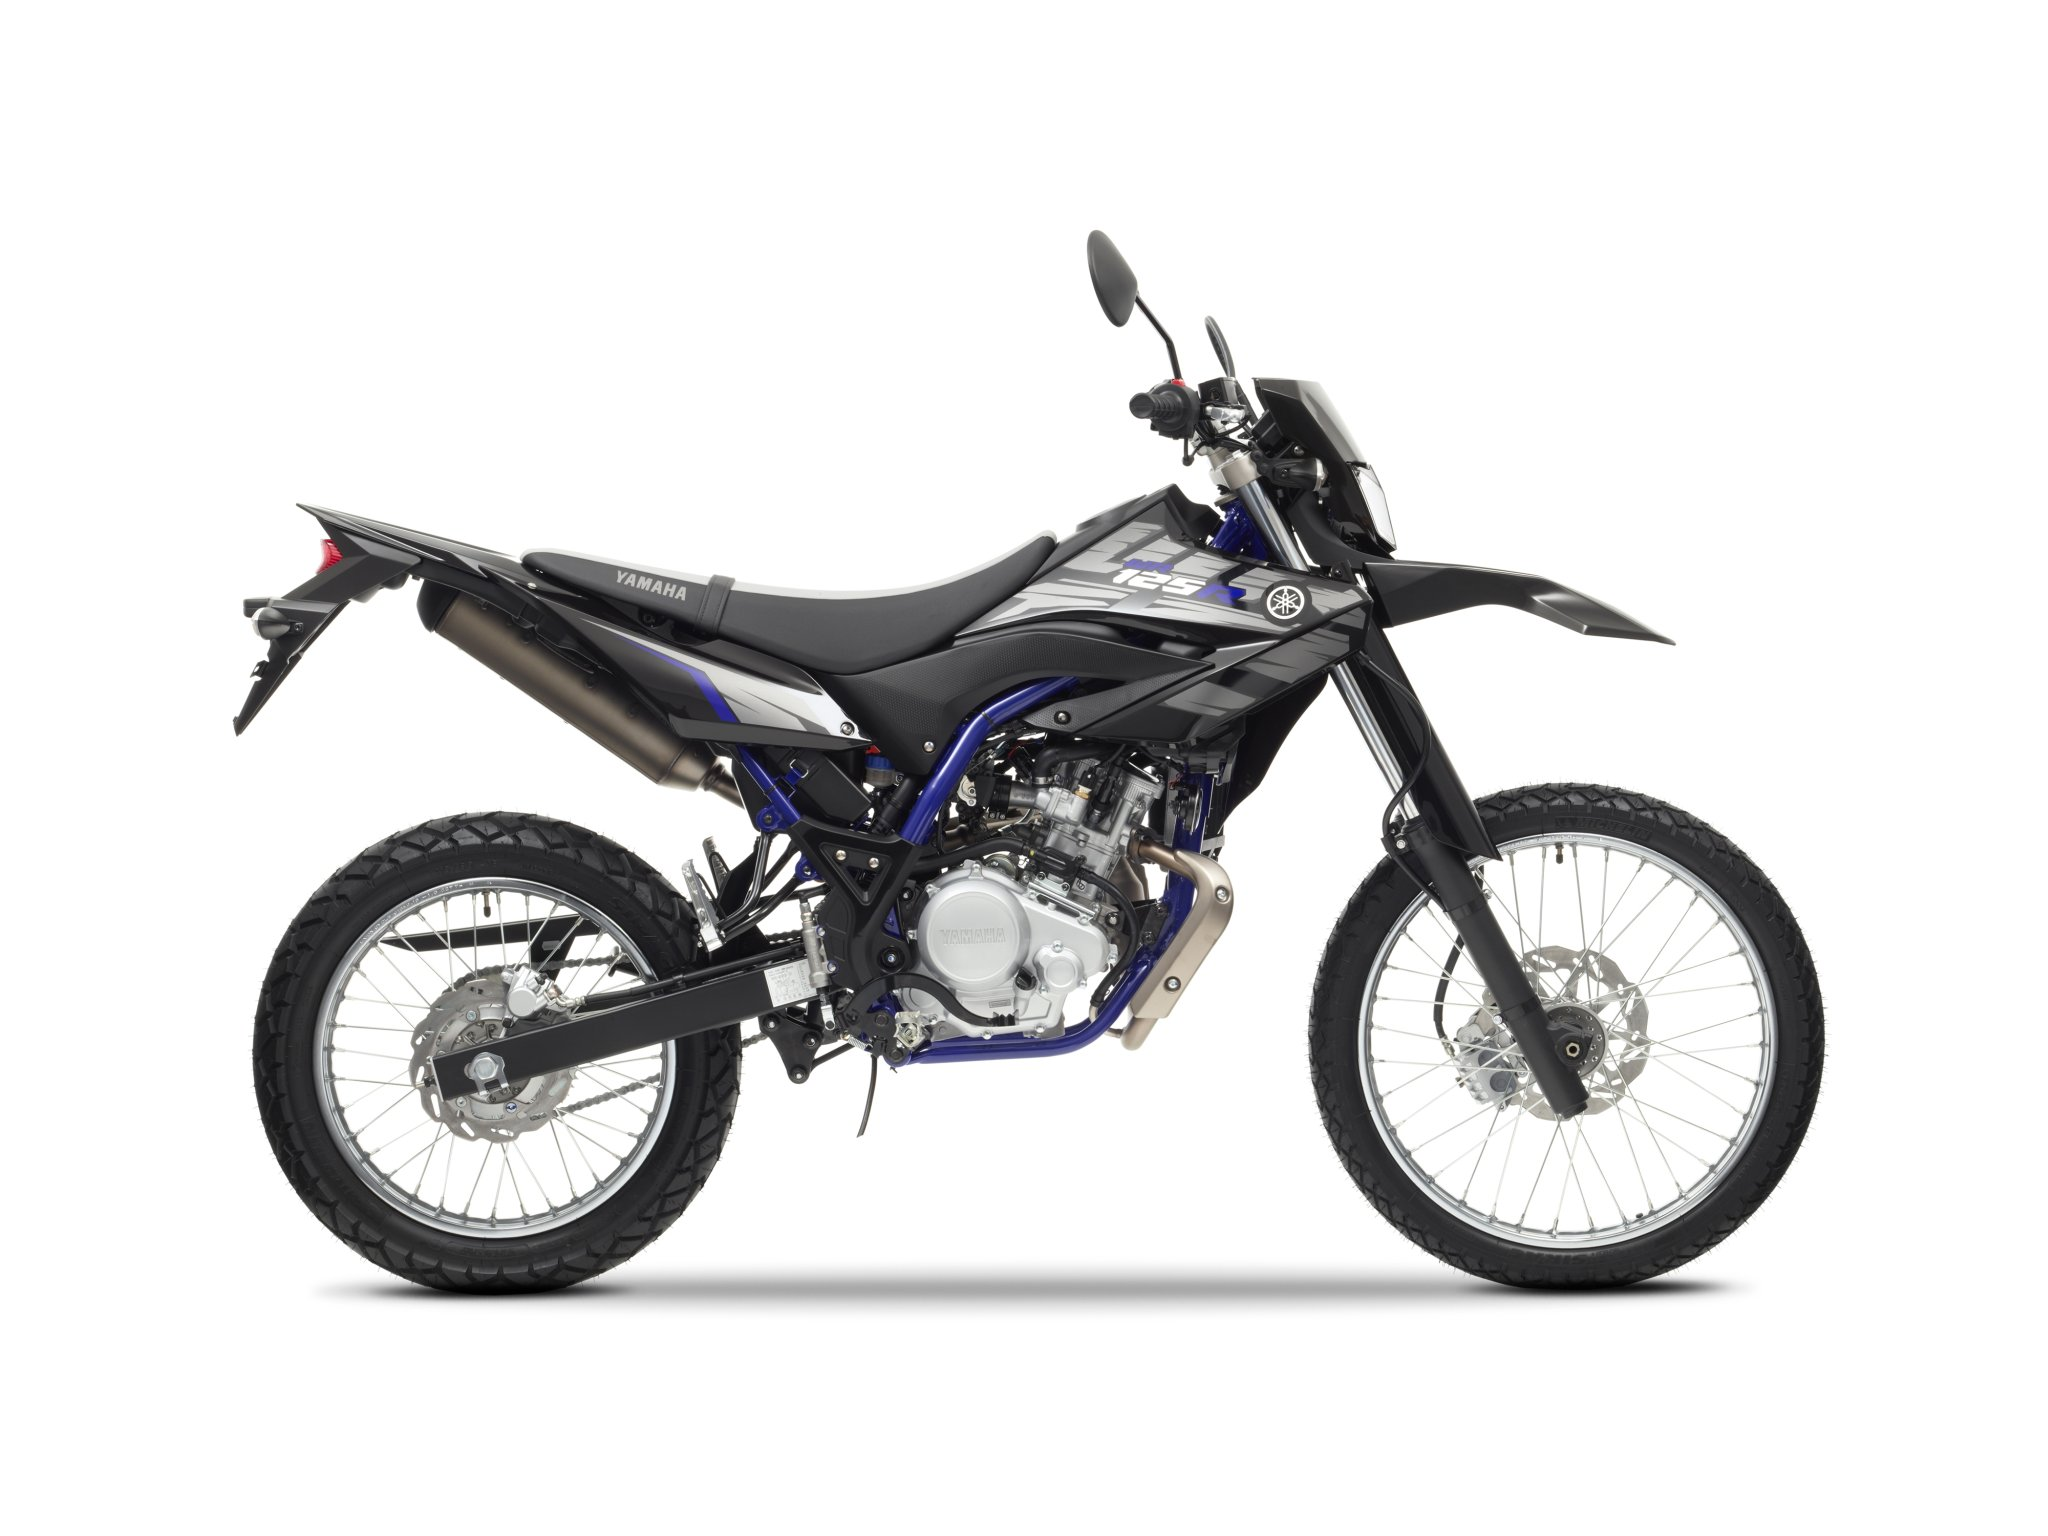 starter with Motorraeder Yamaha Wr 125 R 4 3863 on US20090293385 in addition 4607611588 also Honda Accord Why Is My Car Not Starting And My Lights Flickering 376285 besides Bullet Journal Free Printable furthermore Pokemon Starter 1st Gen Mandala 630653002.